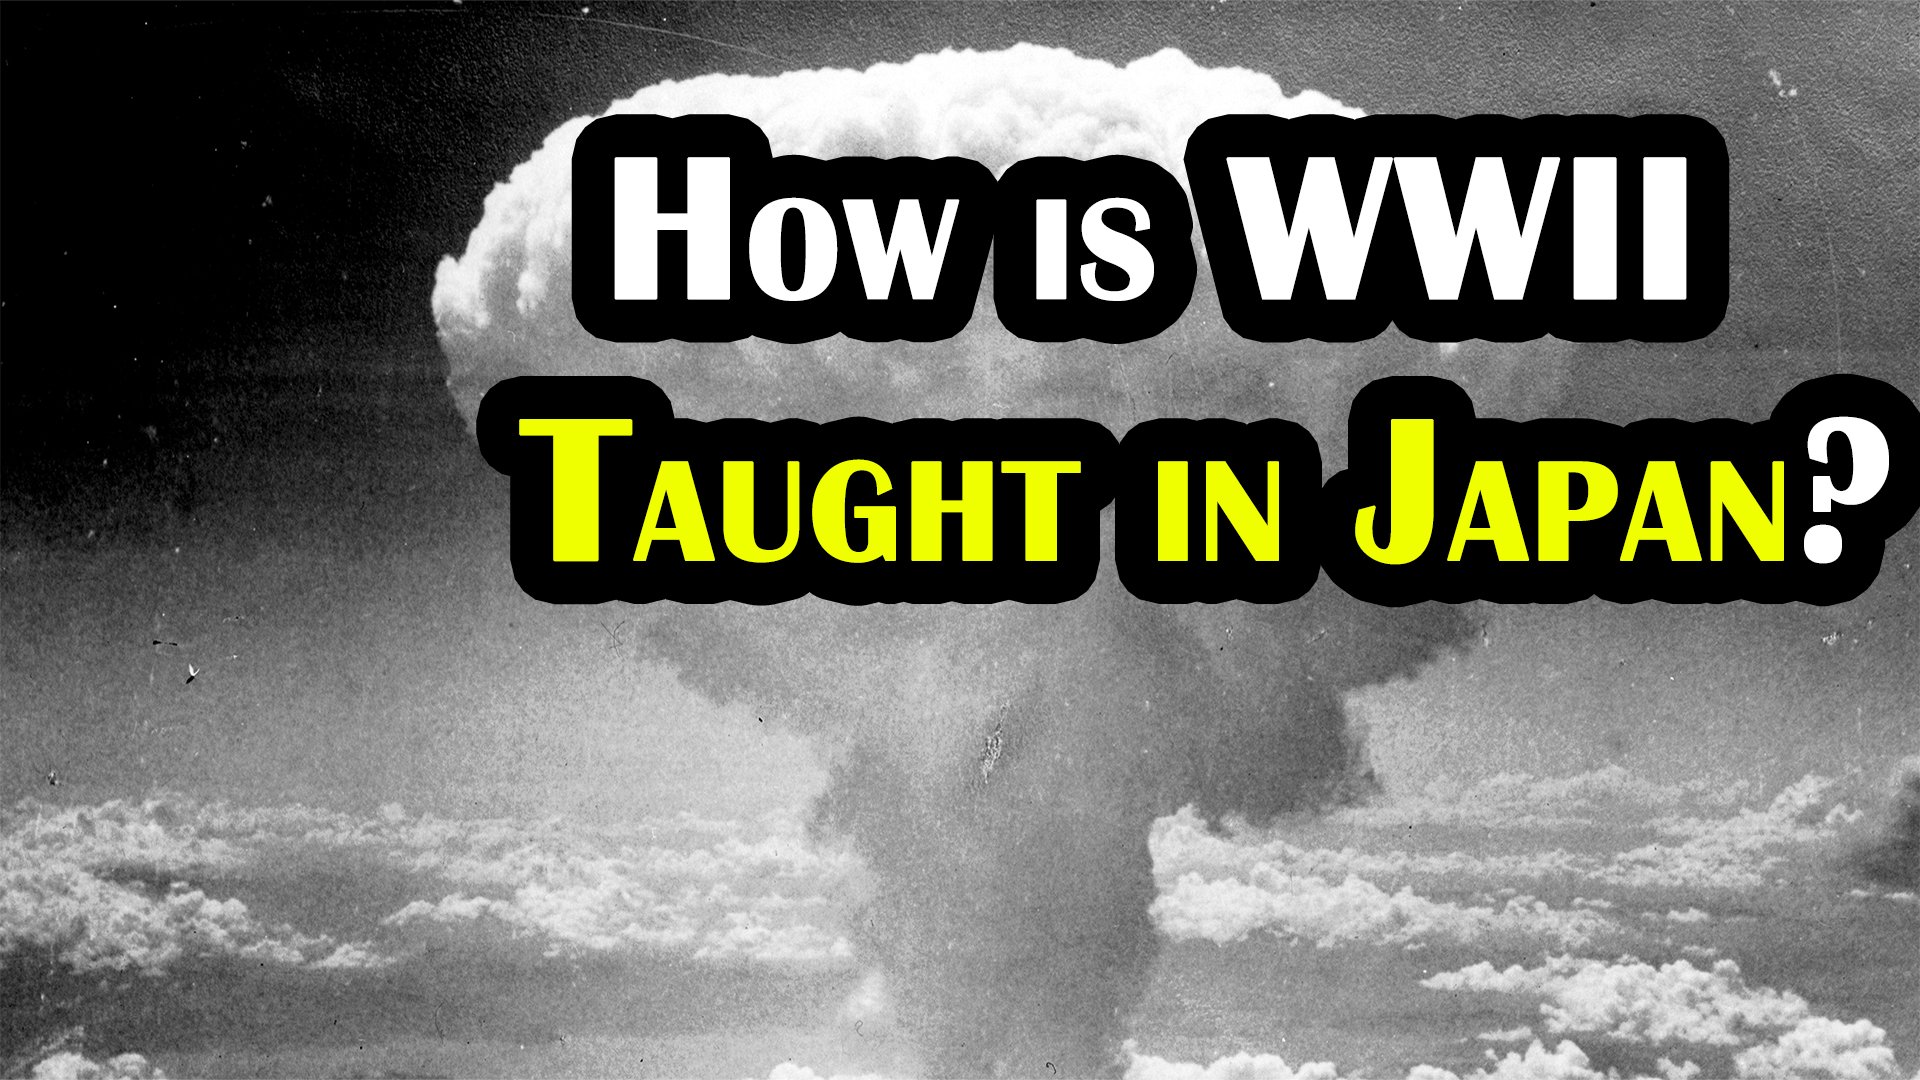 How Do the Japanese Teach About WWII?